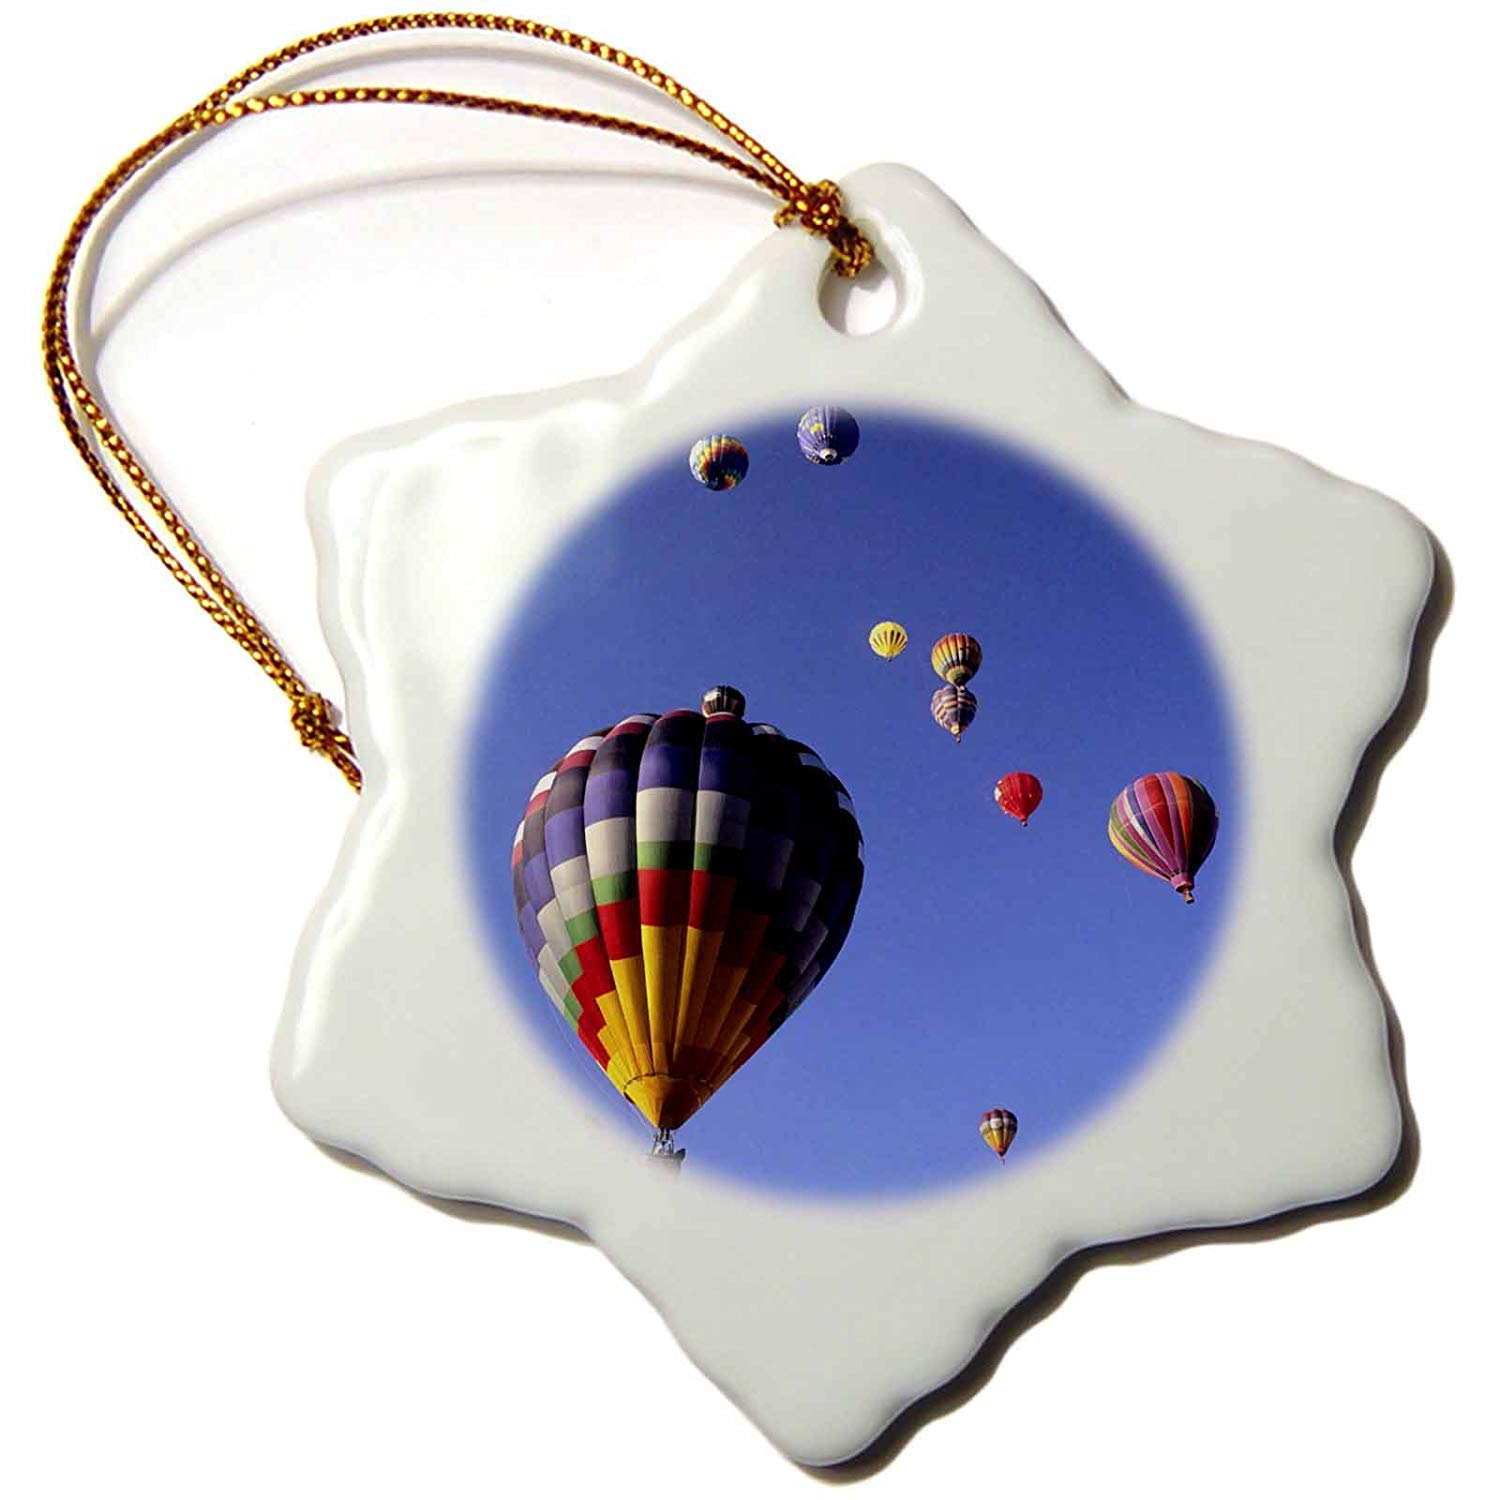 Yohoba Hot Air Balloons Albuquerque New Mexico Bill Bachmann Snowflake Decorative Hanging Ornament Porcelain 3 Inch